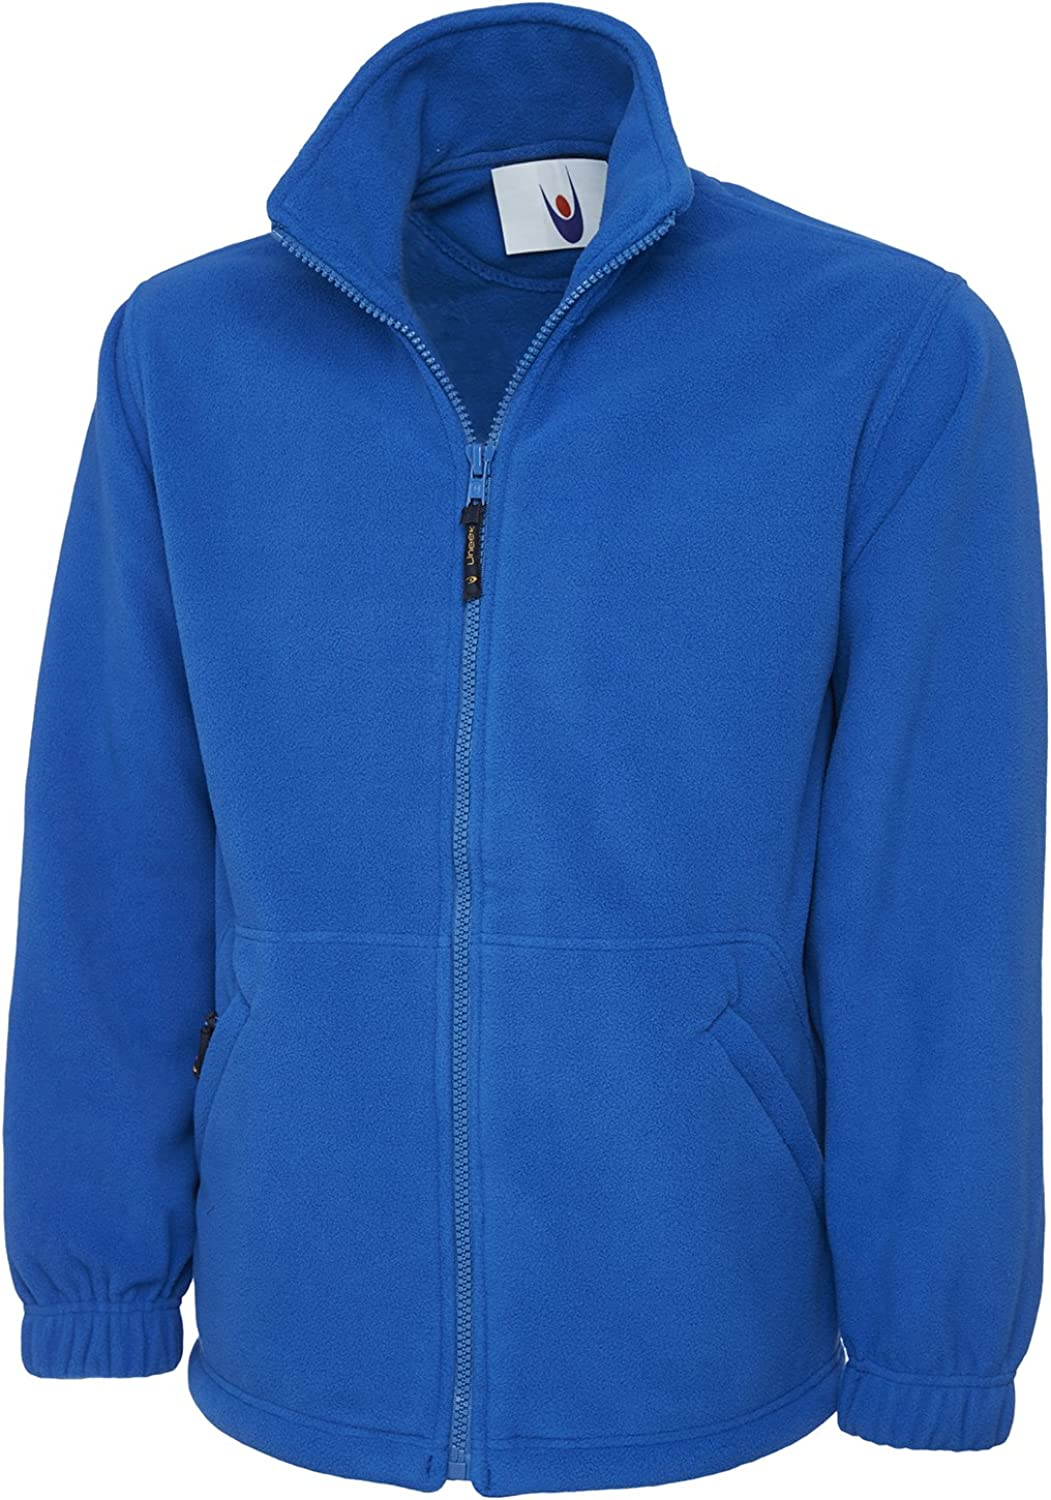 Uneek Clothing Mens Premium Full Zip Fleece Jacket X-Large Royal Blue